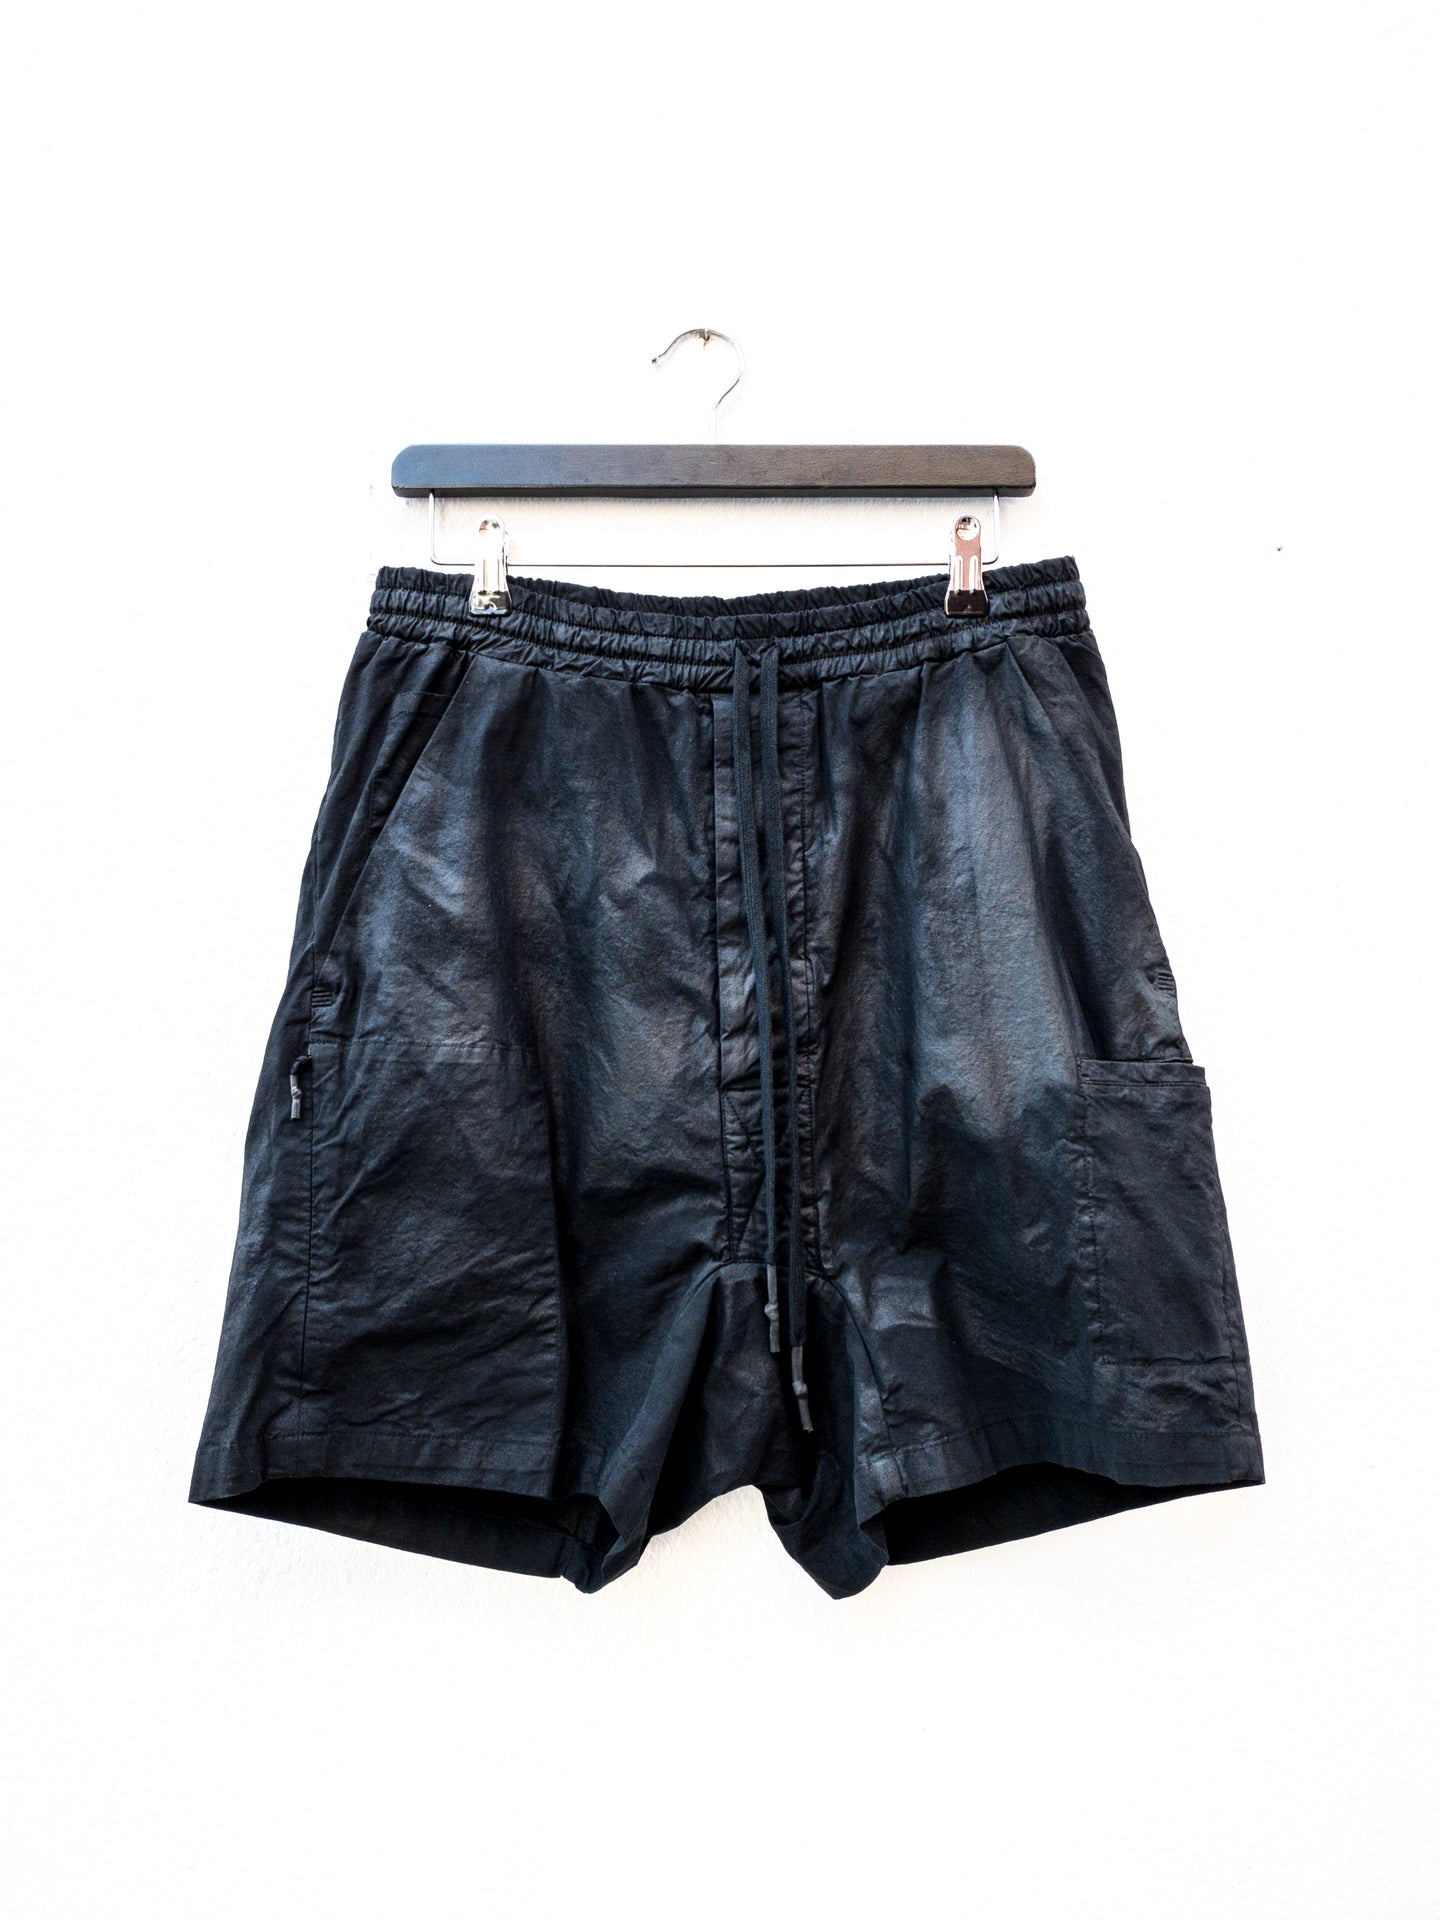 Boris Bidjan Saberi 11 P25 Drop Shorts